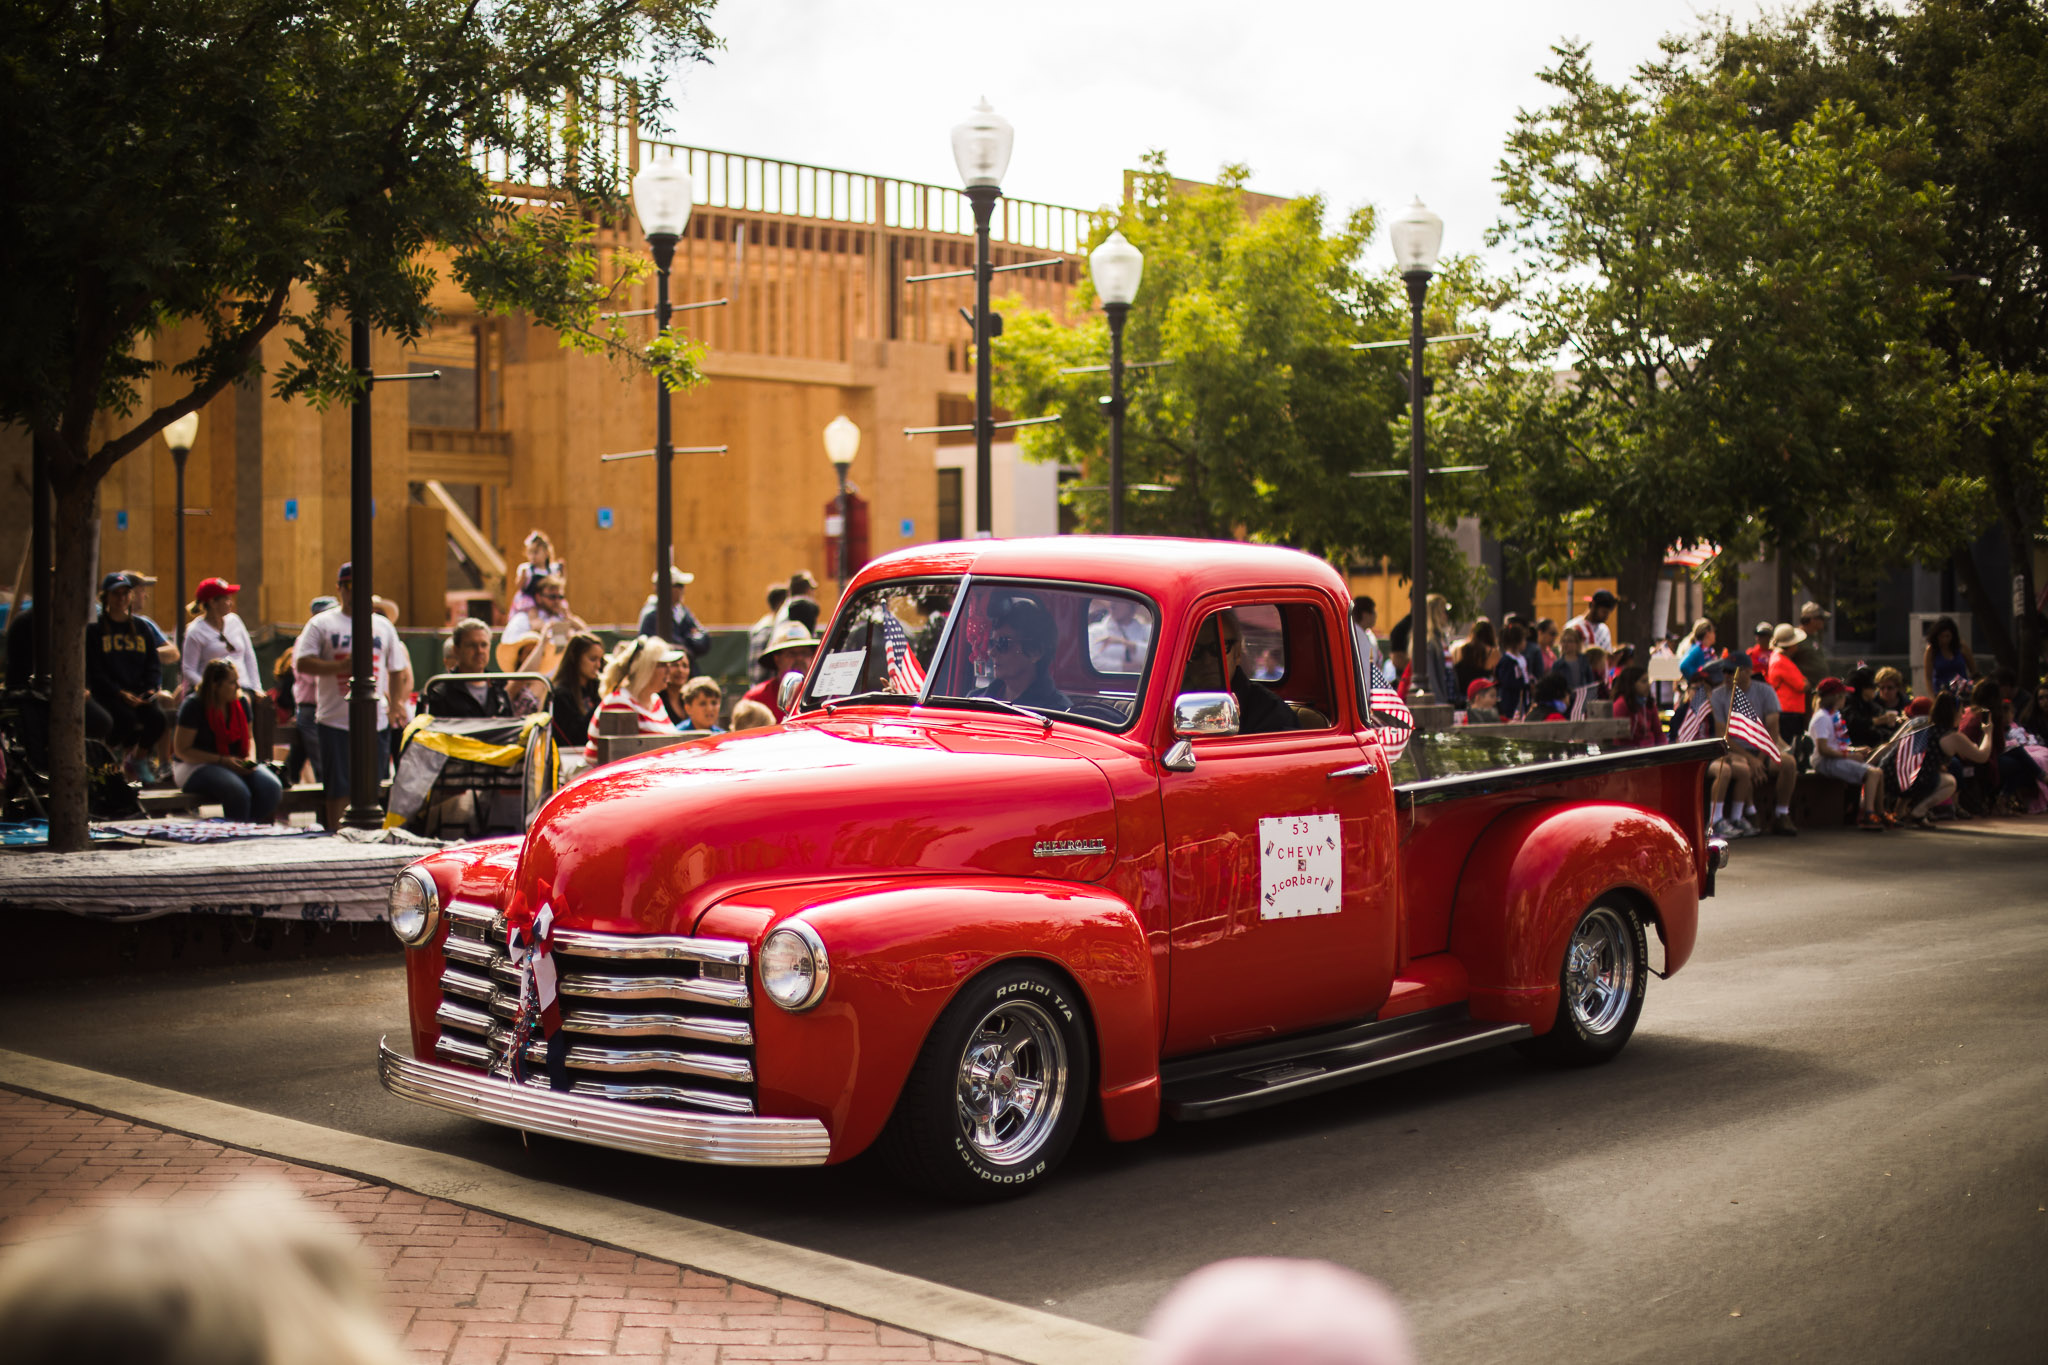 Archer_Inspired_Photography_Morgan_Hill_California_4th_of_july_parade-17.jpg